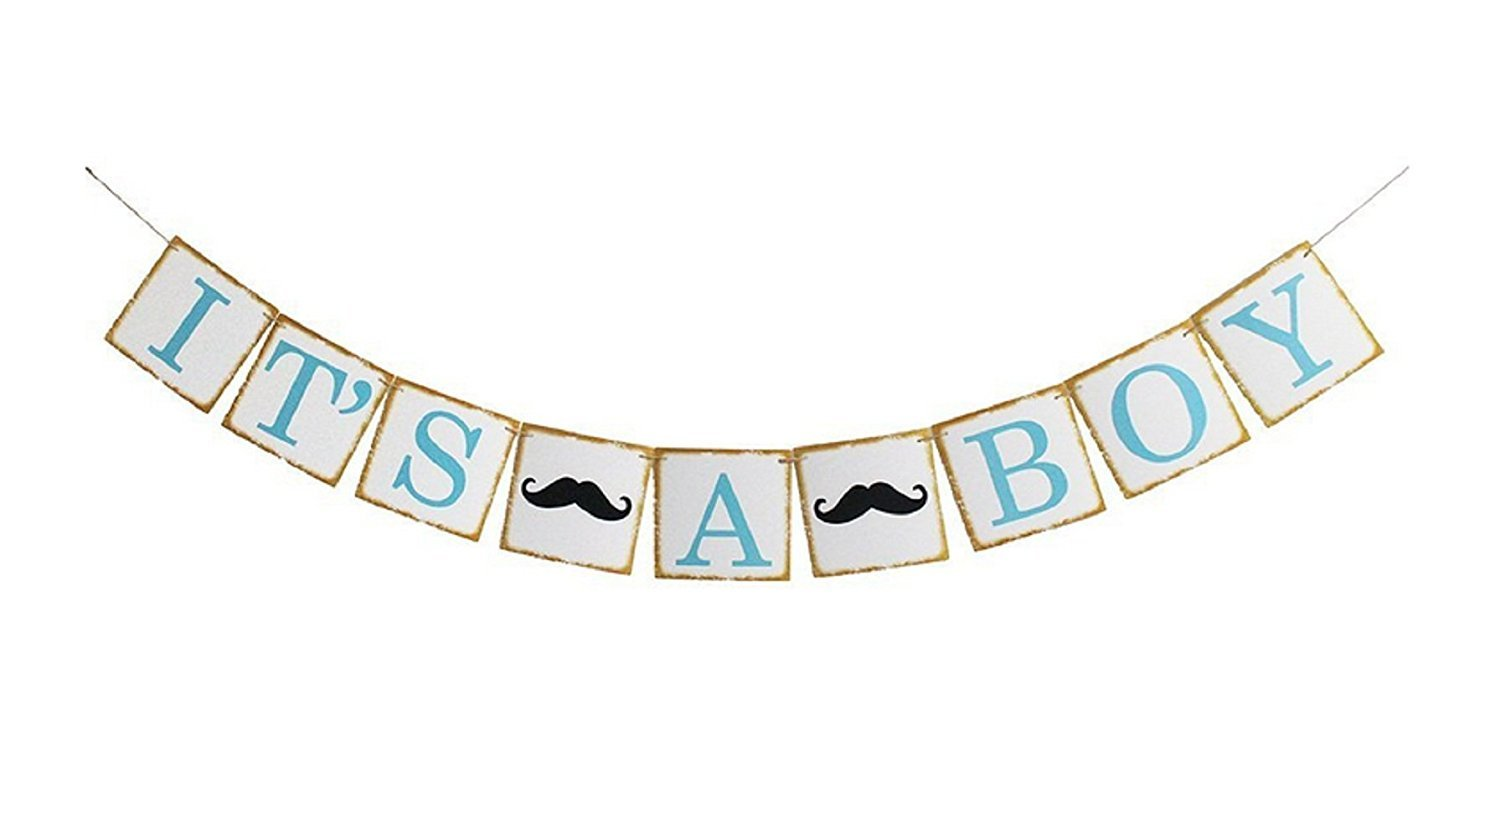 Firefairy Its A Boy with Mustache Sign Garland Bunting Banner,Boy Baby Shower,Birthday Party Decoration.